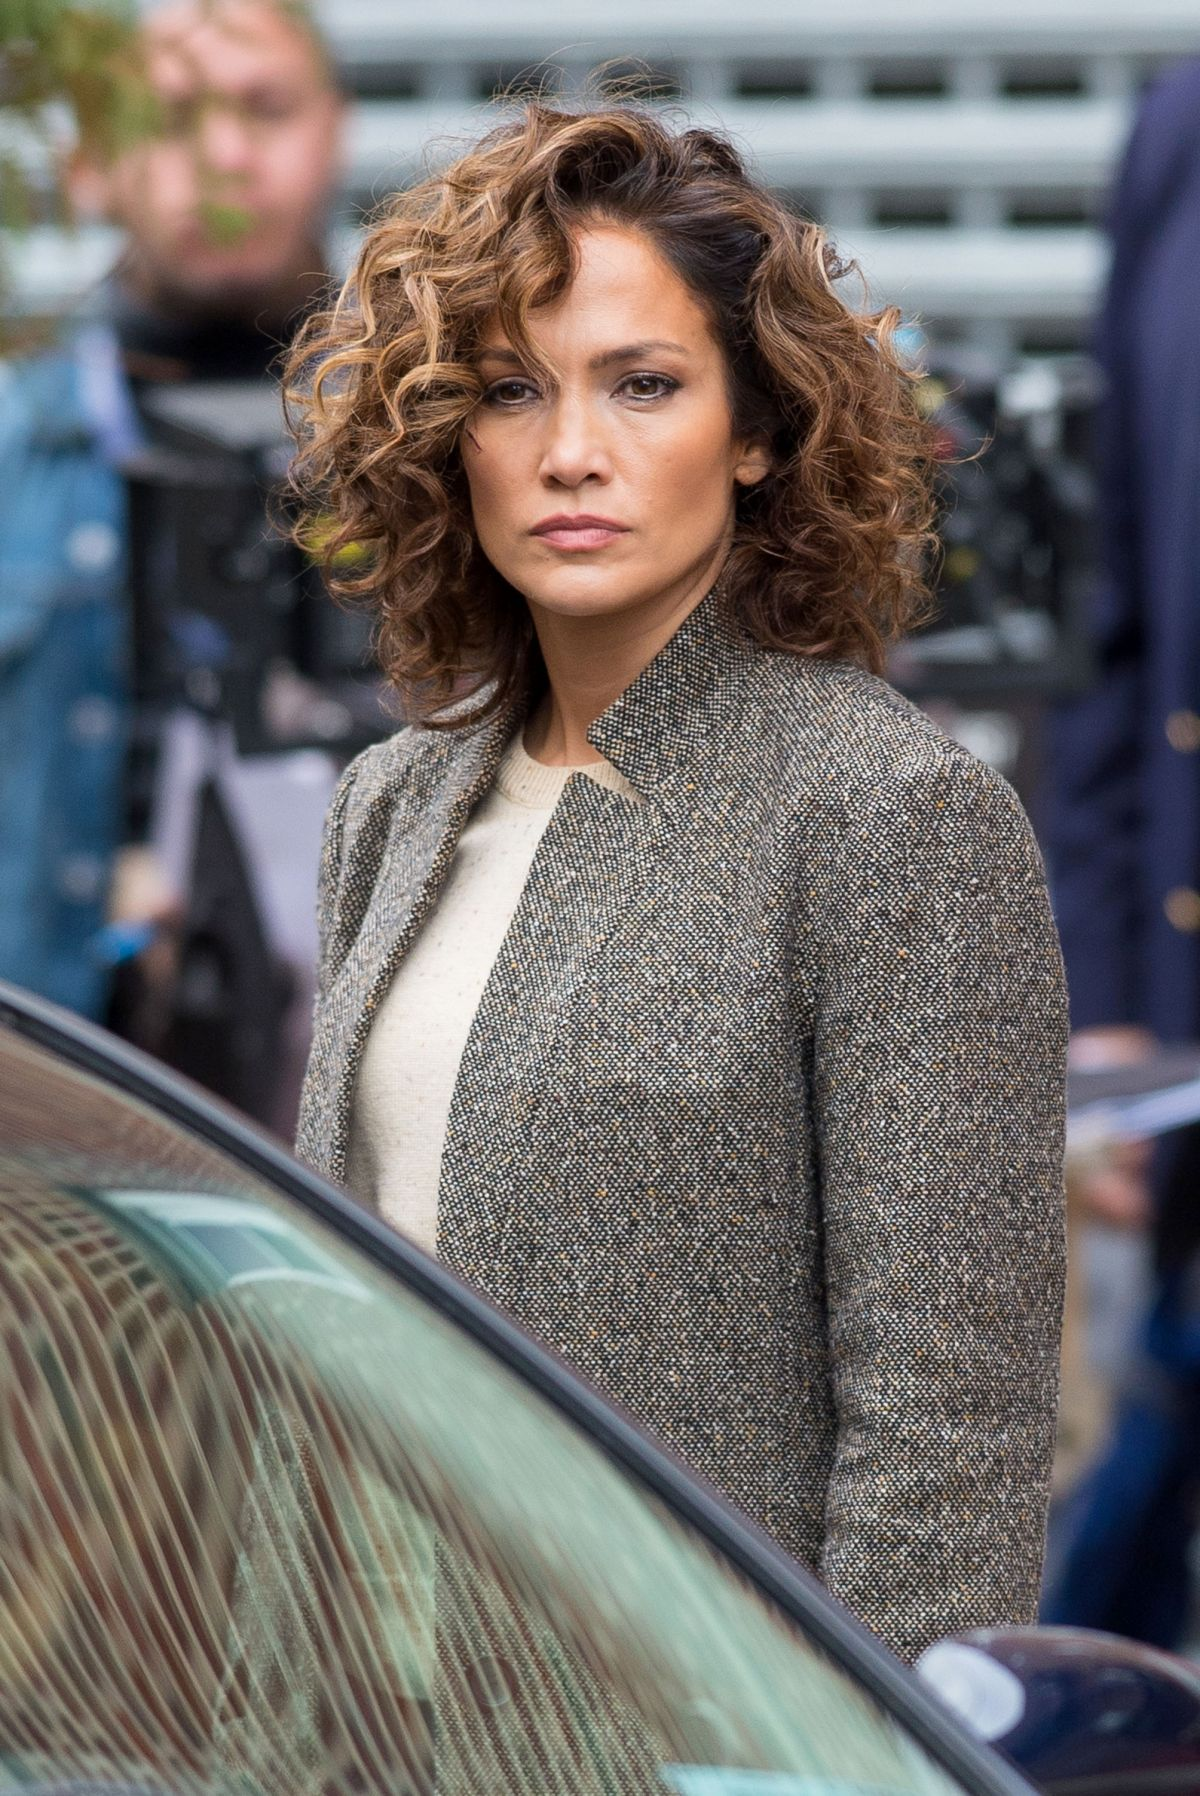 a00248c633b jennifer lopez hairstyle on shades of blue - Bing images